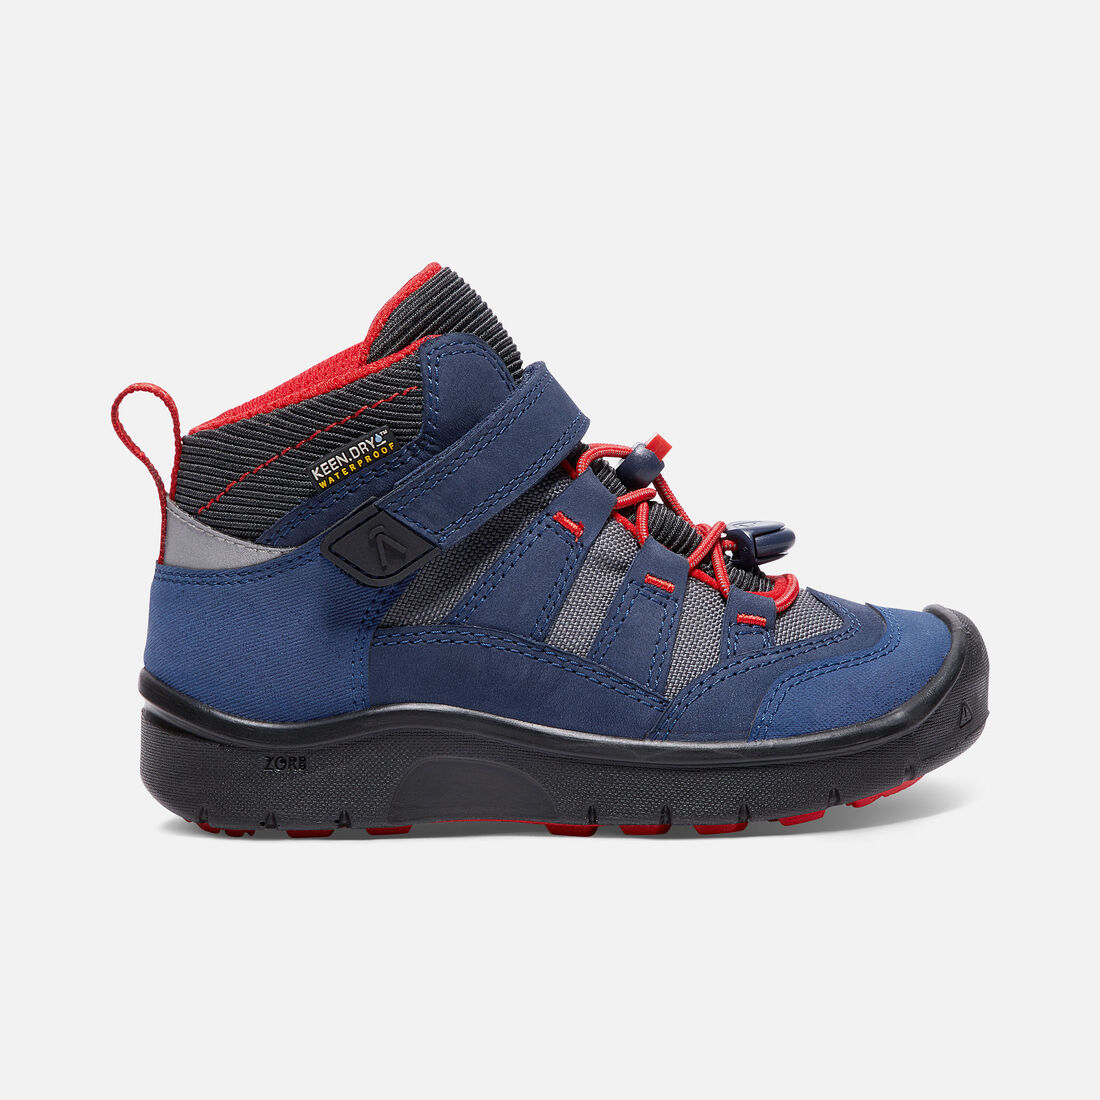 Little Kids' HIKEPORT Waterproof Mid in Dress Blues/Fiery Red - large view.